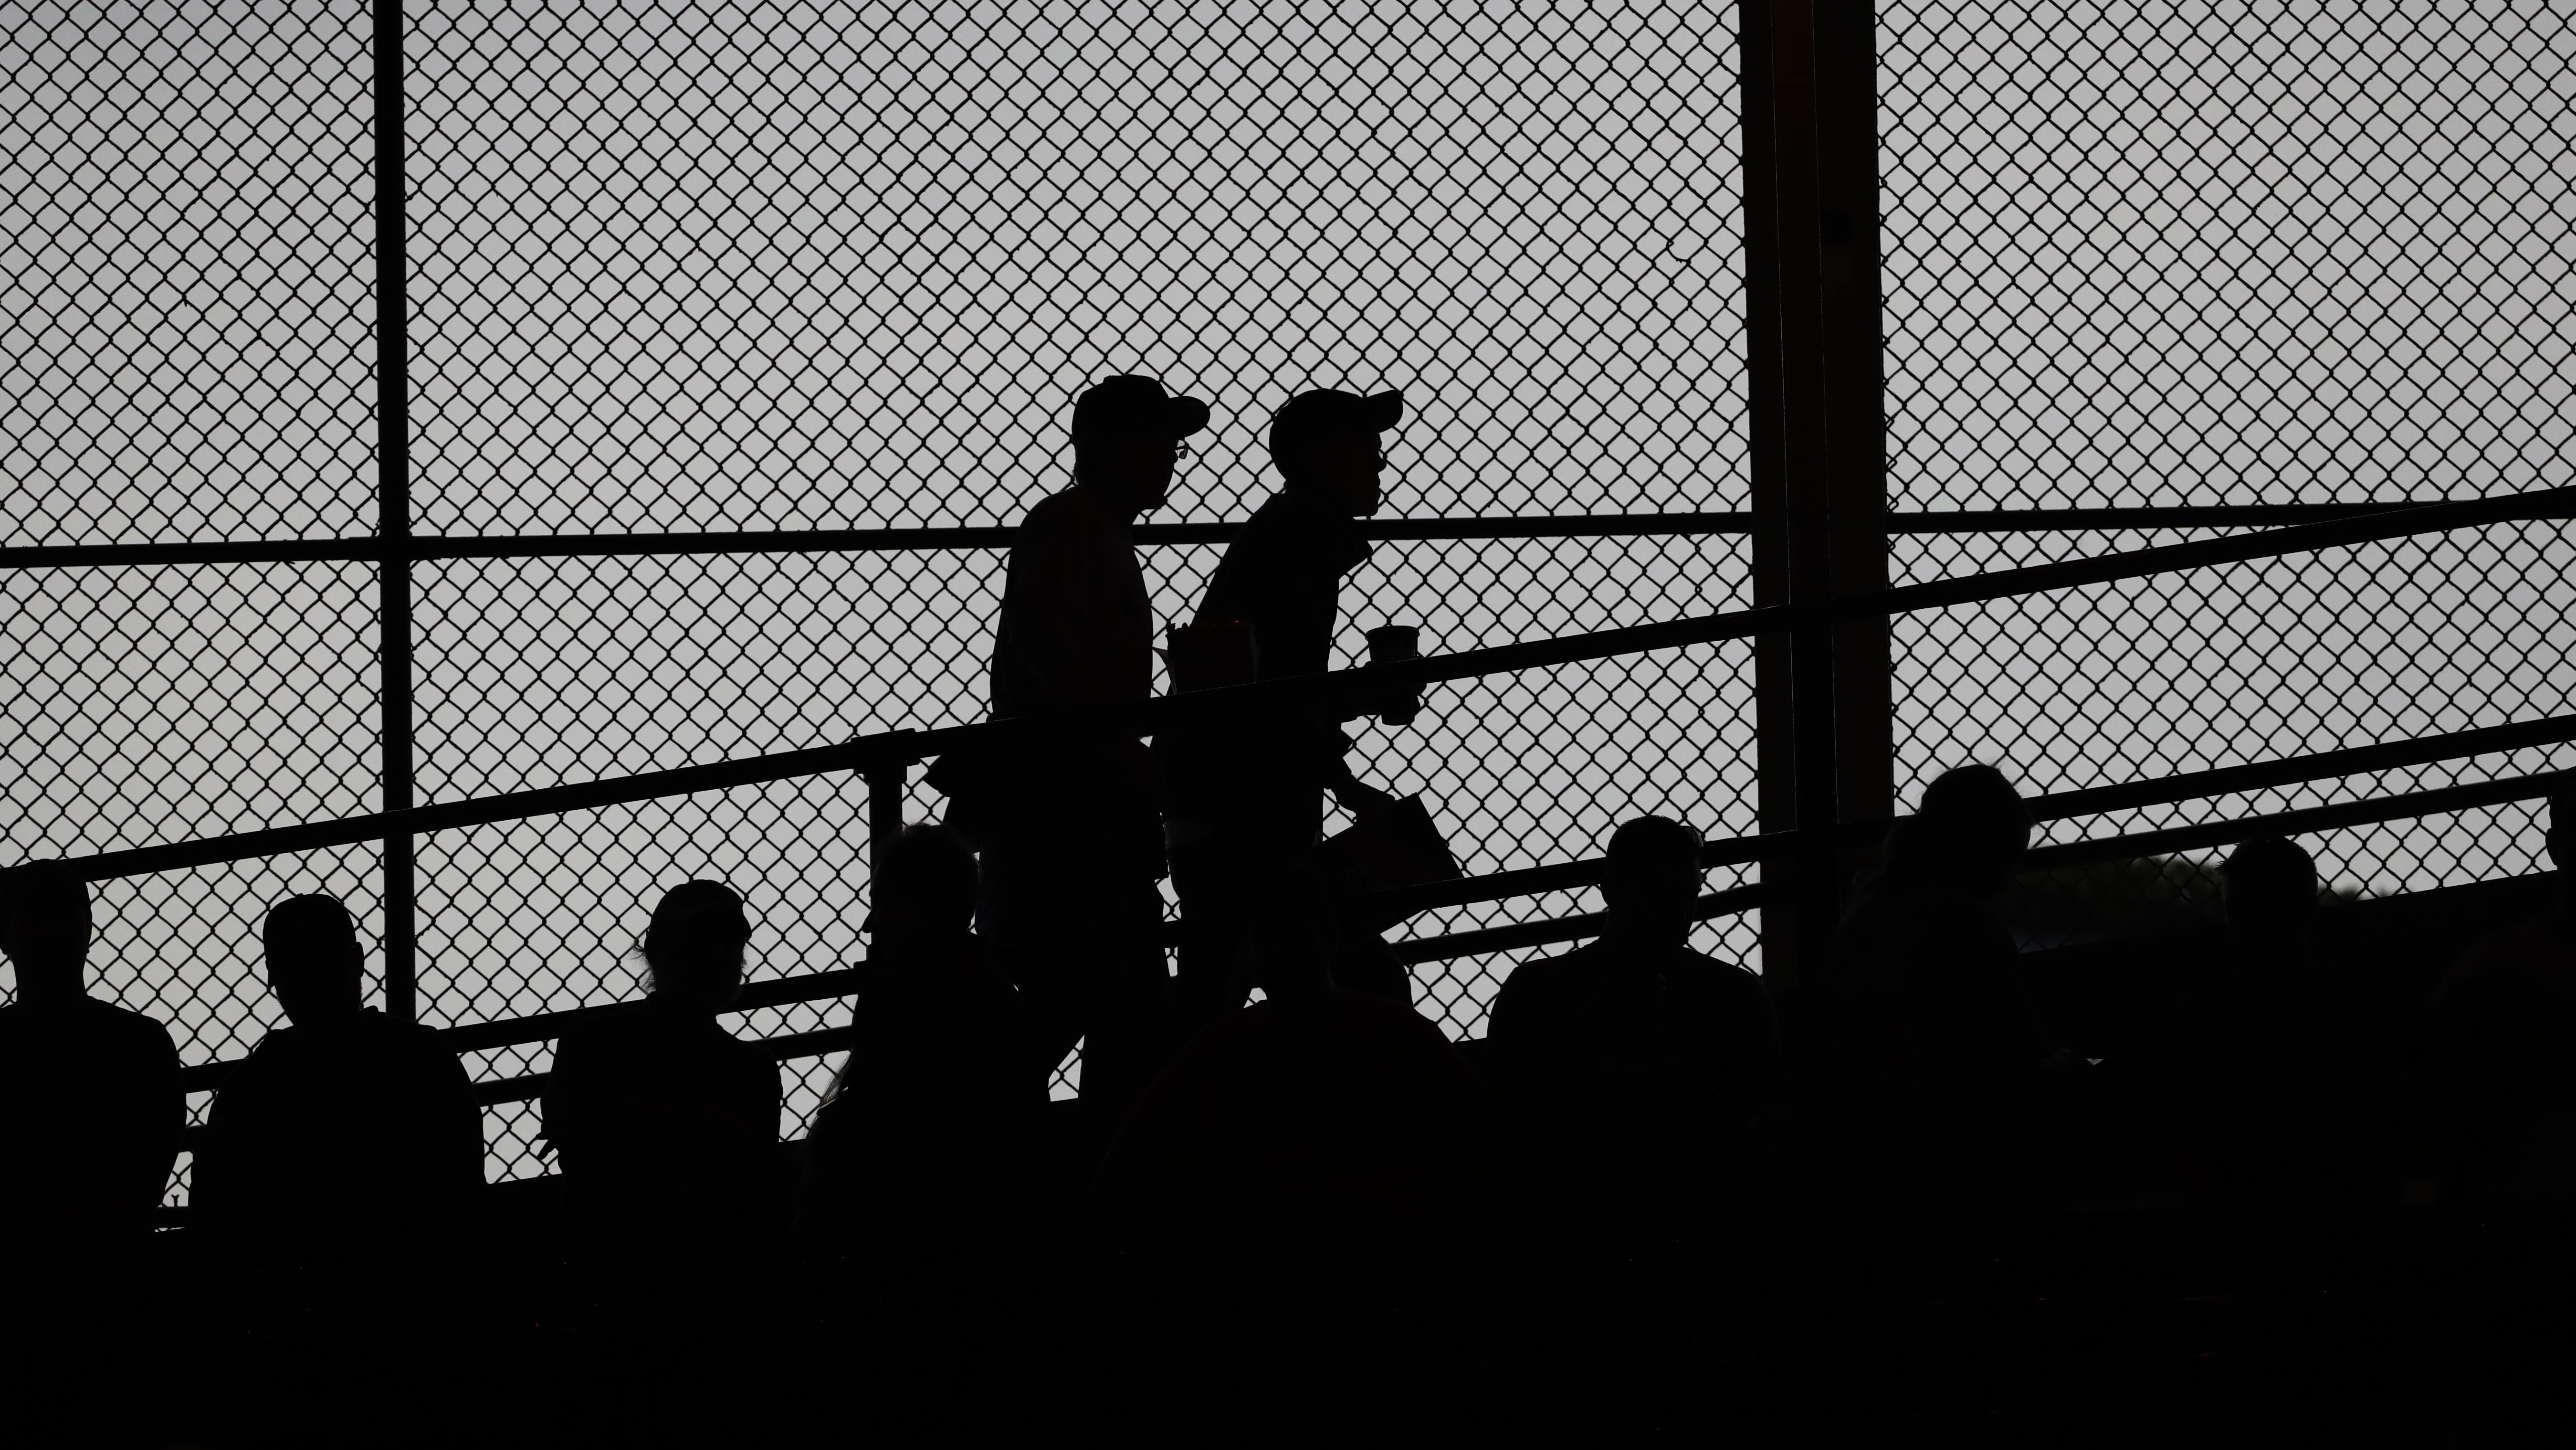 Fans make their way to their seats at Wrigley Field before Game 4 of the Major League Baseball World Series between the Cleveland Indians and the Chicago Cubs Saturday, Oct. 29, 2016, in Chicago. (AP Photo/David J. Phillip)